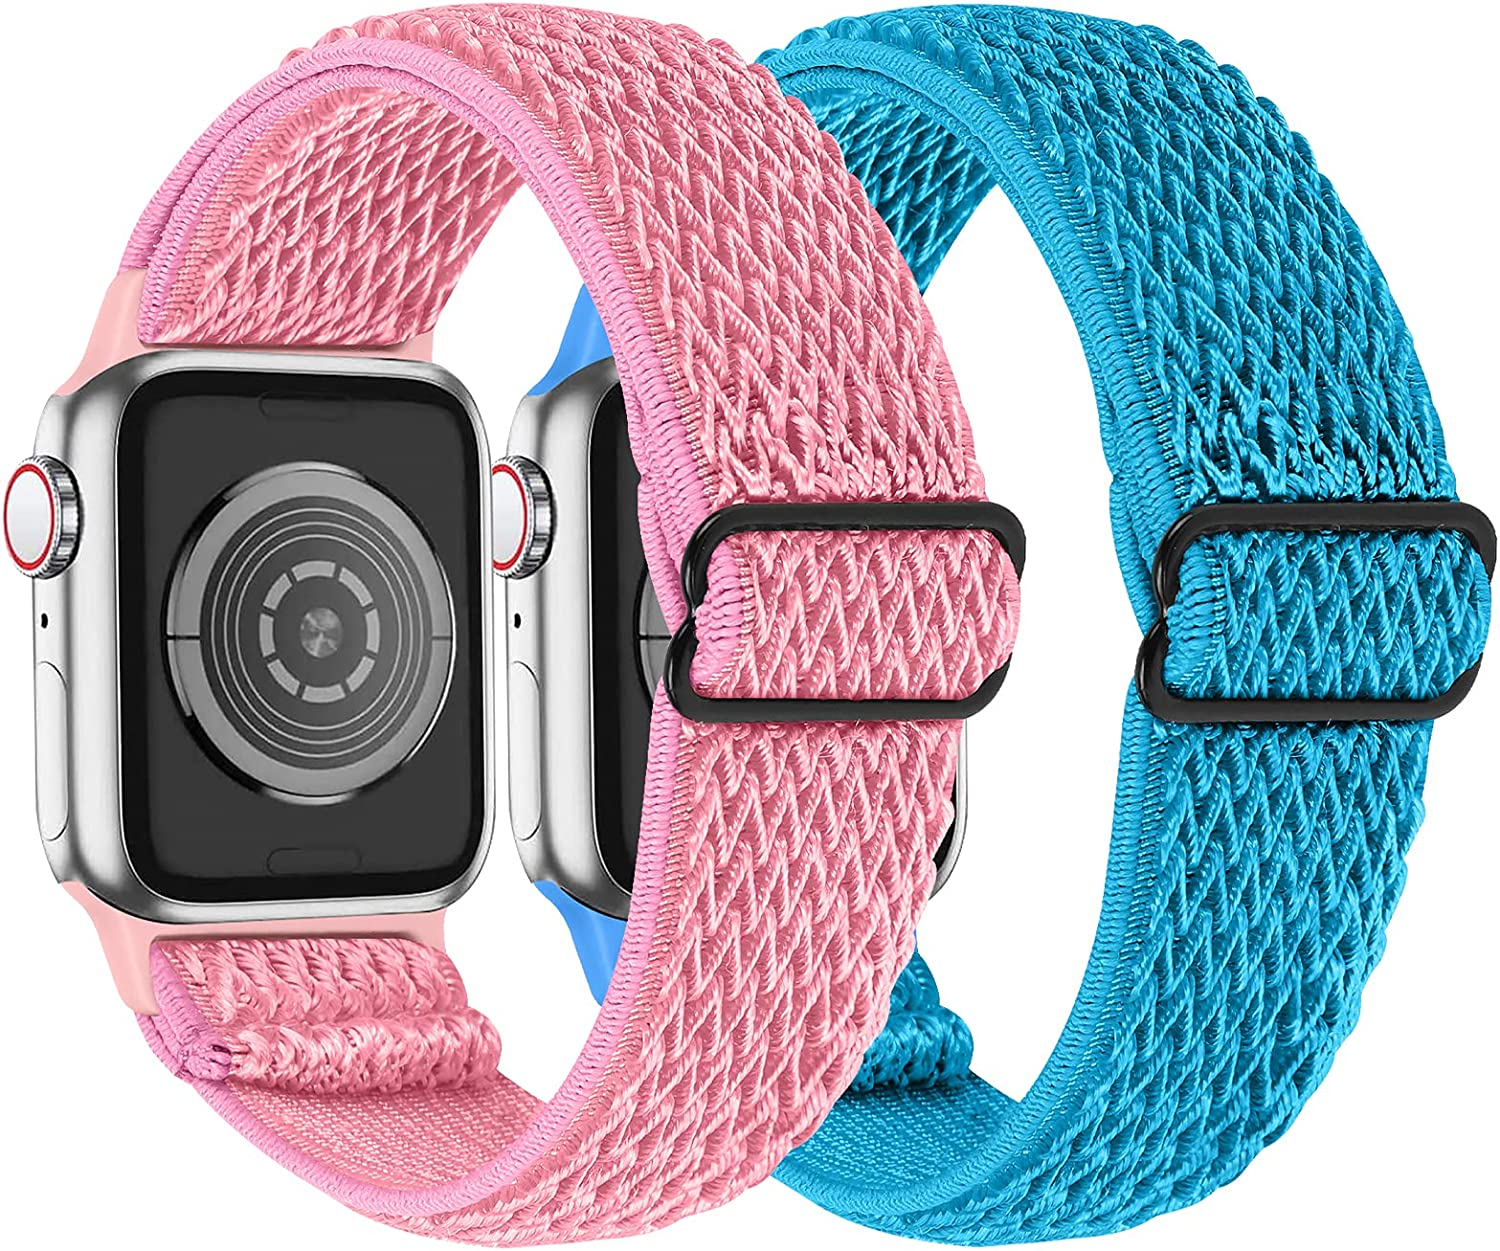 MEFEO 2 Pack Stretchy Solo Loop Strap Compatible with Apple Watch Bands 38mm 40mm 42mm 44mm, Adjustable Braided Sport Elastic Nylon Wristband for iWatch Series 6/SE/5/4/3/2/1 (Pink+Sky Blue,38mm/40mm)